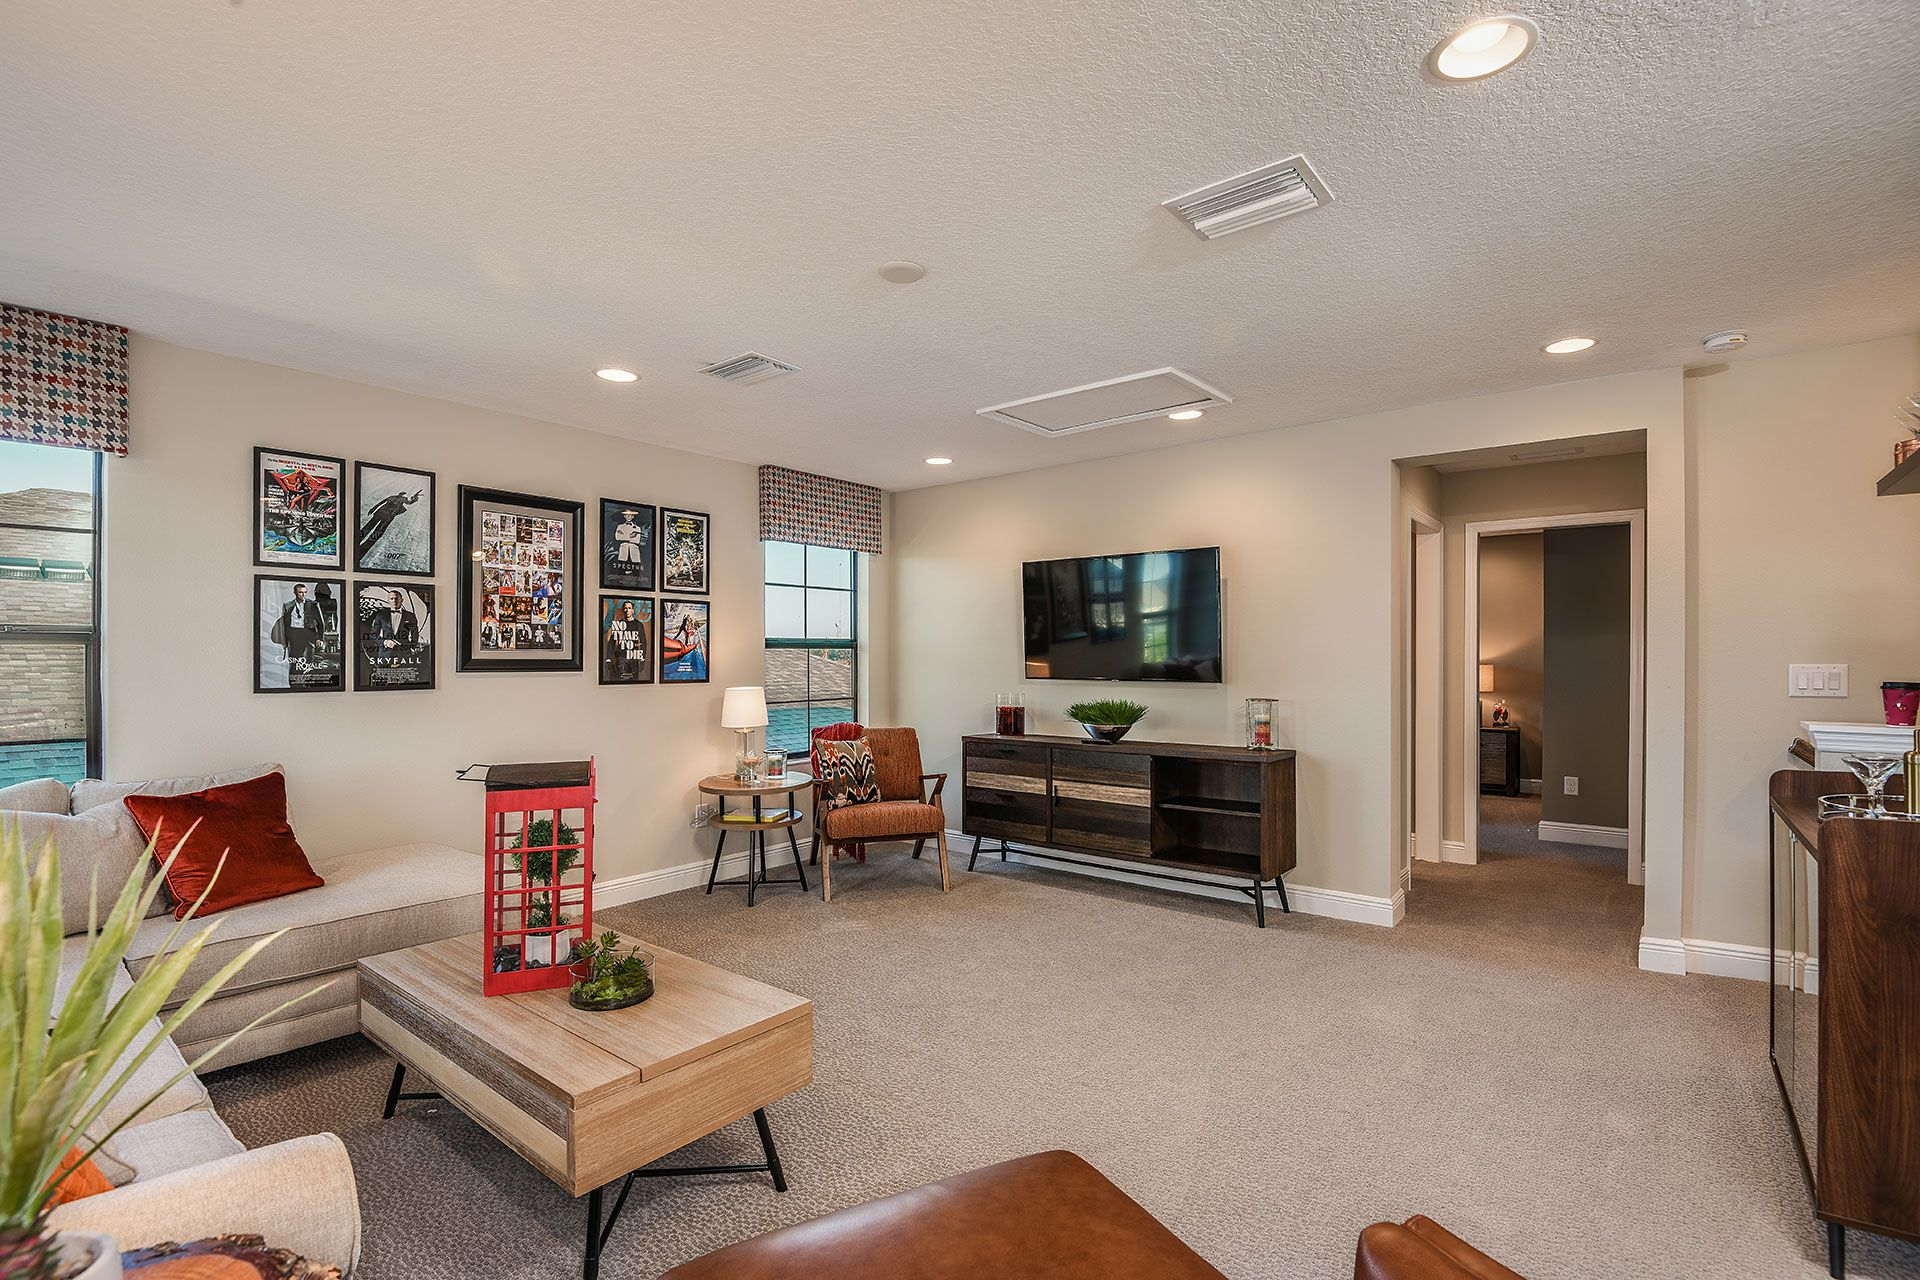 Living Area featured in the Swann IV By Homes by WestBay in Sarasota-Bradenton, FL